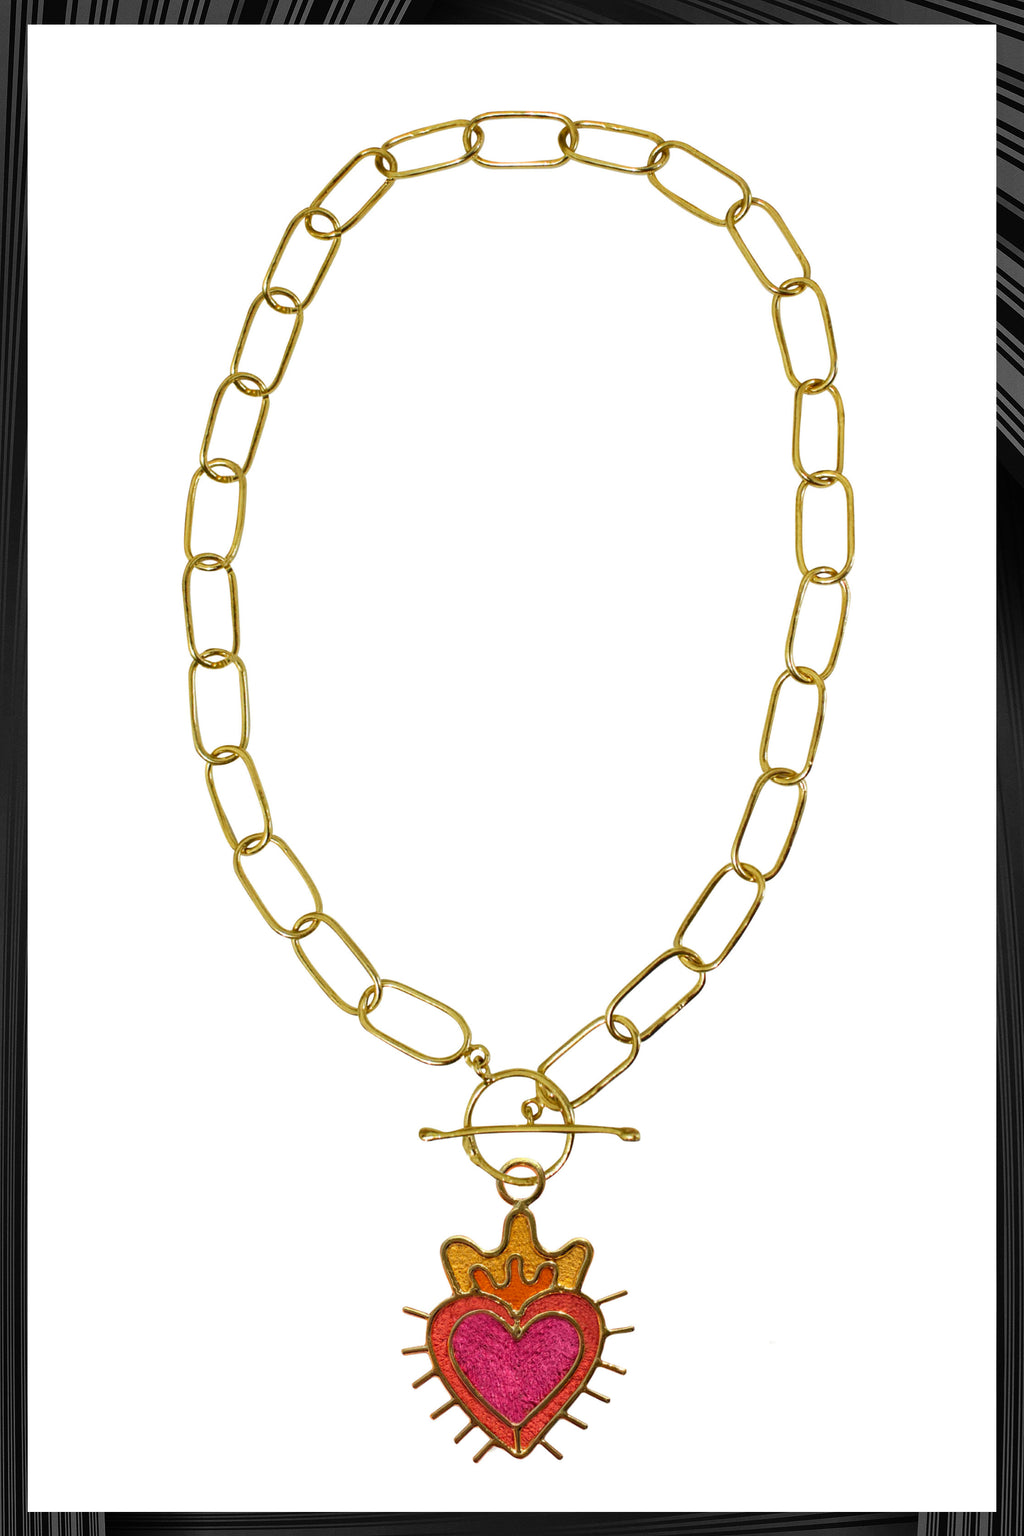 Sagrado Corazon XL Chain Link Necklace | Free Delivery - 3 Week Shipping